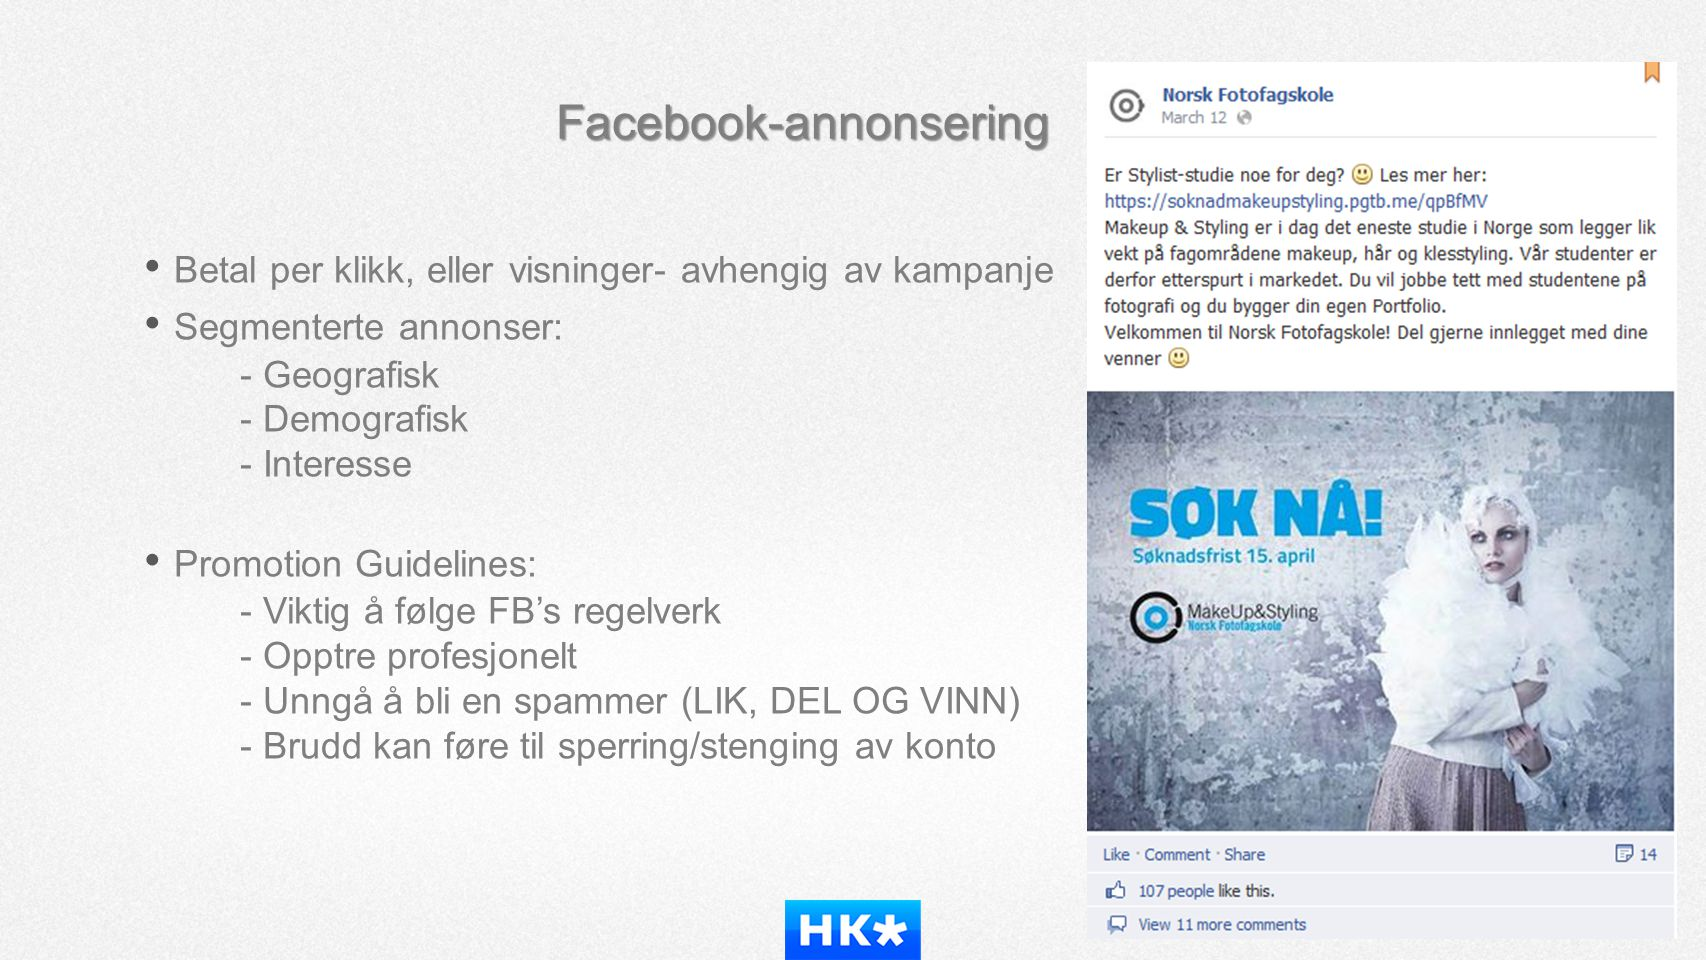 Facebook-annonsering